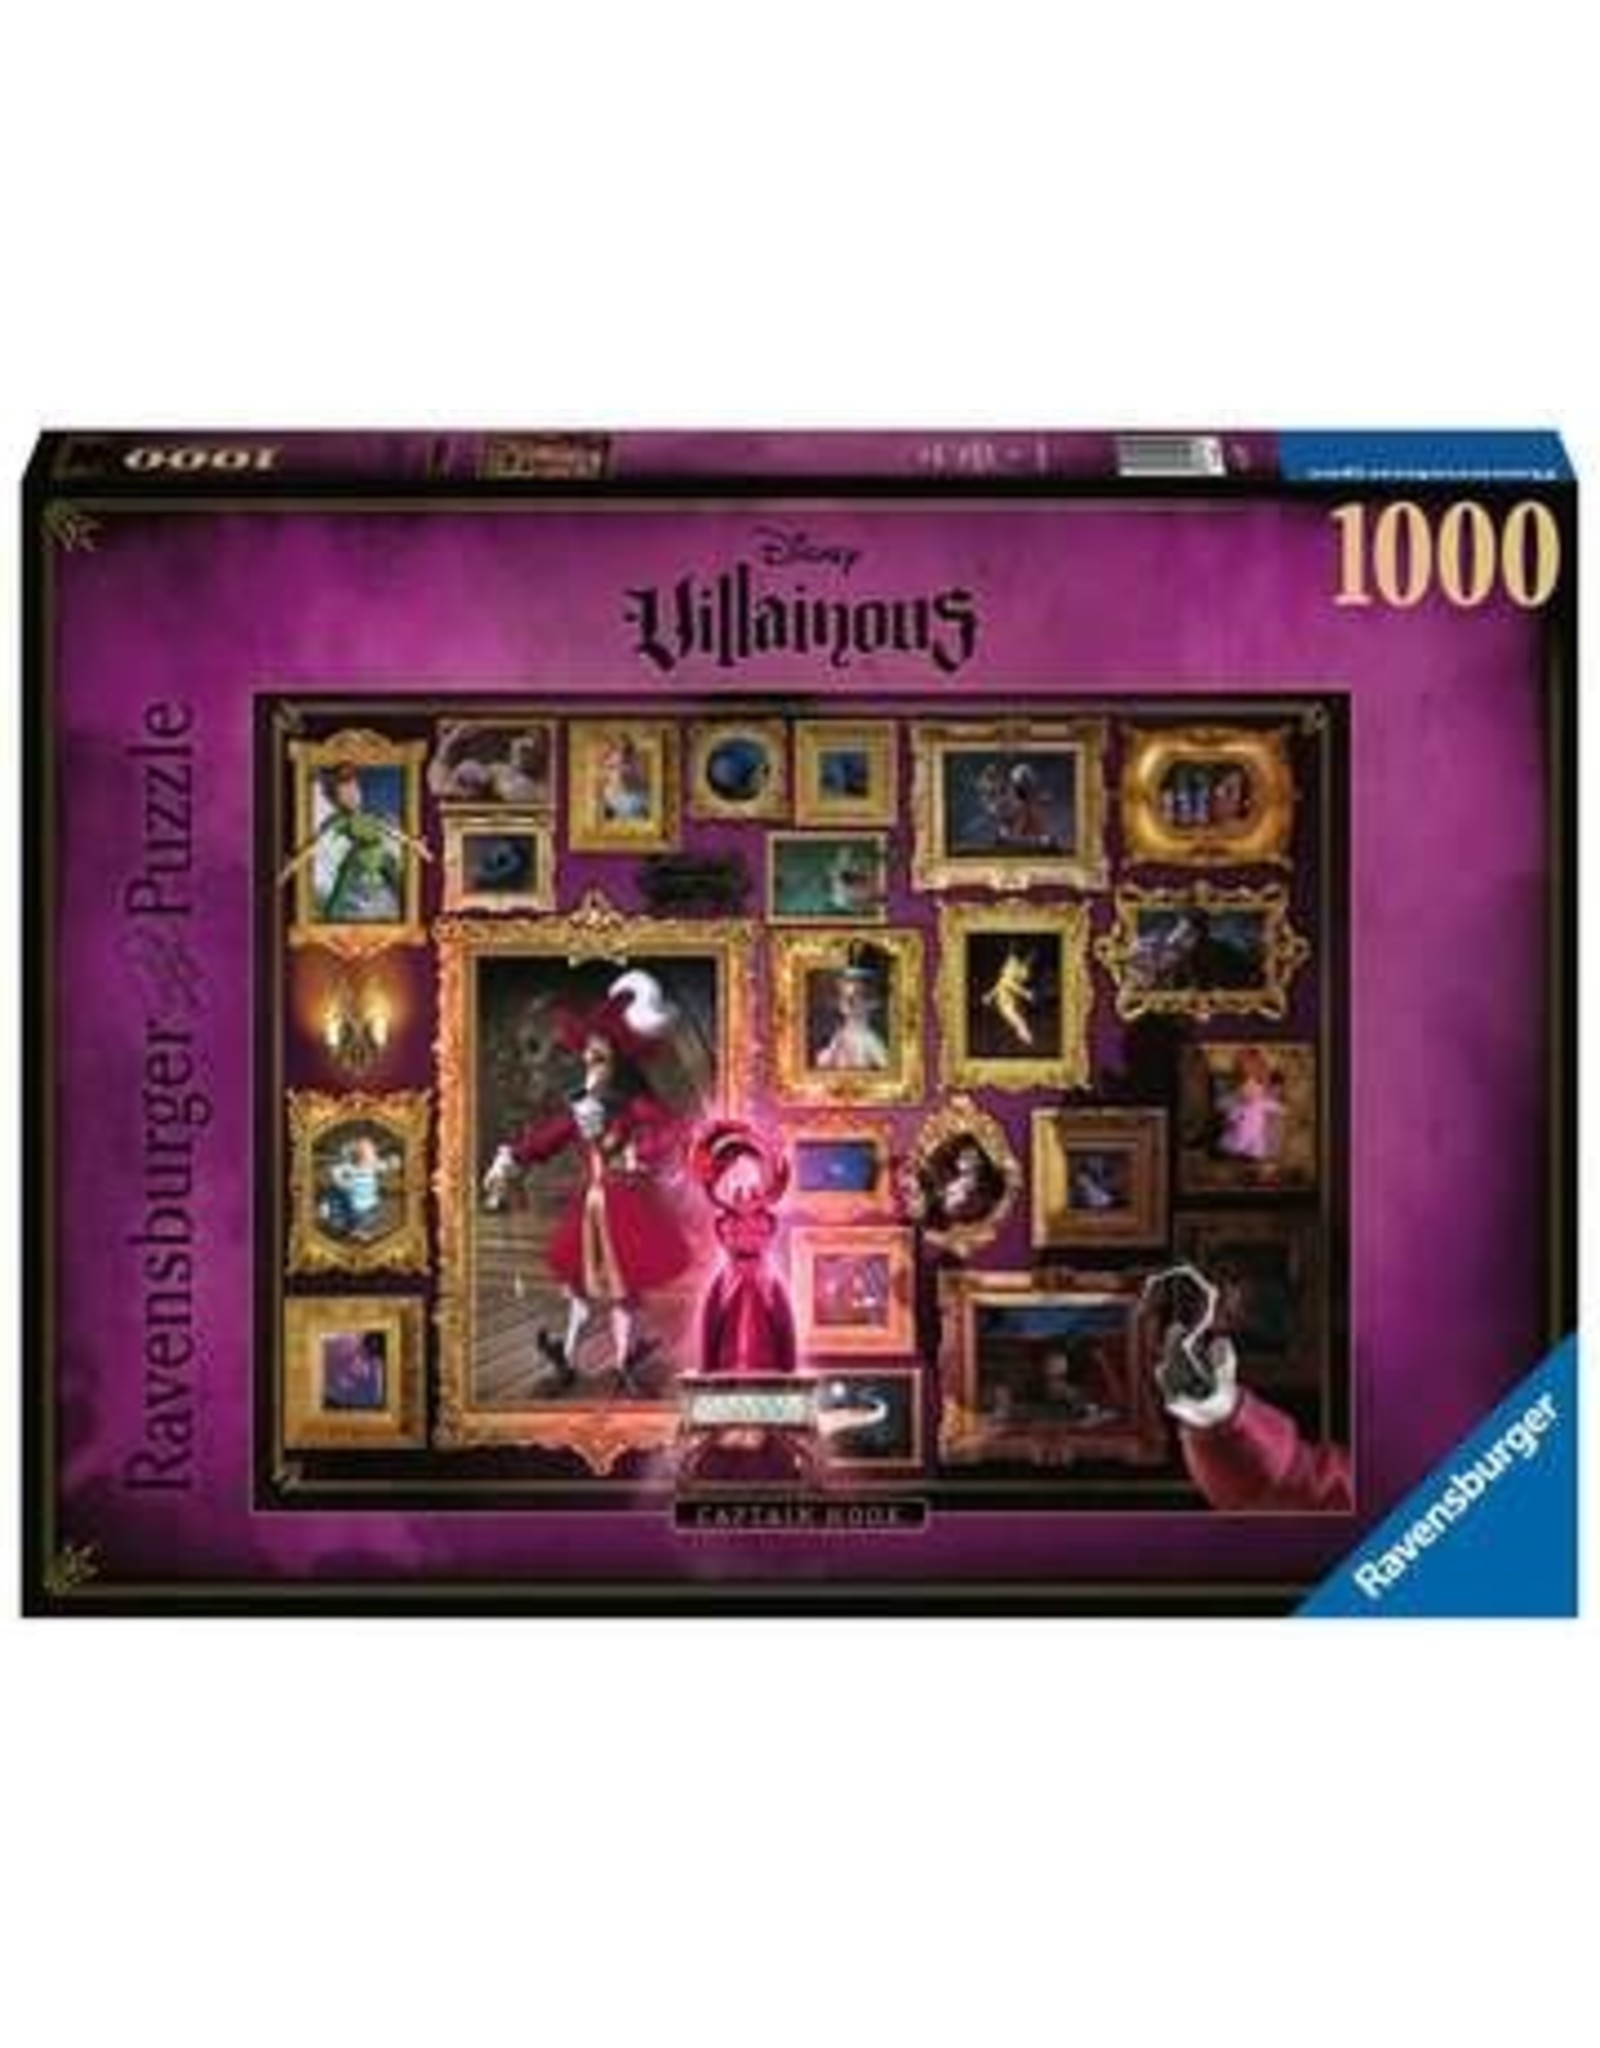 Ravensburger Disney Villainous Captain Hook, 1000pc